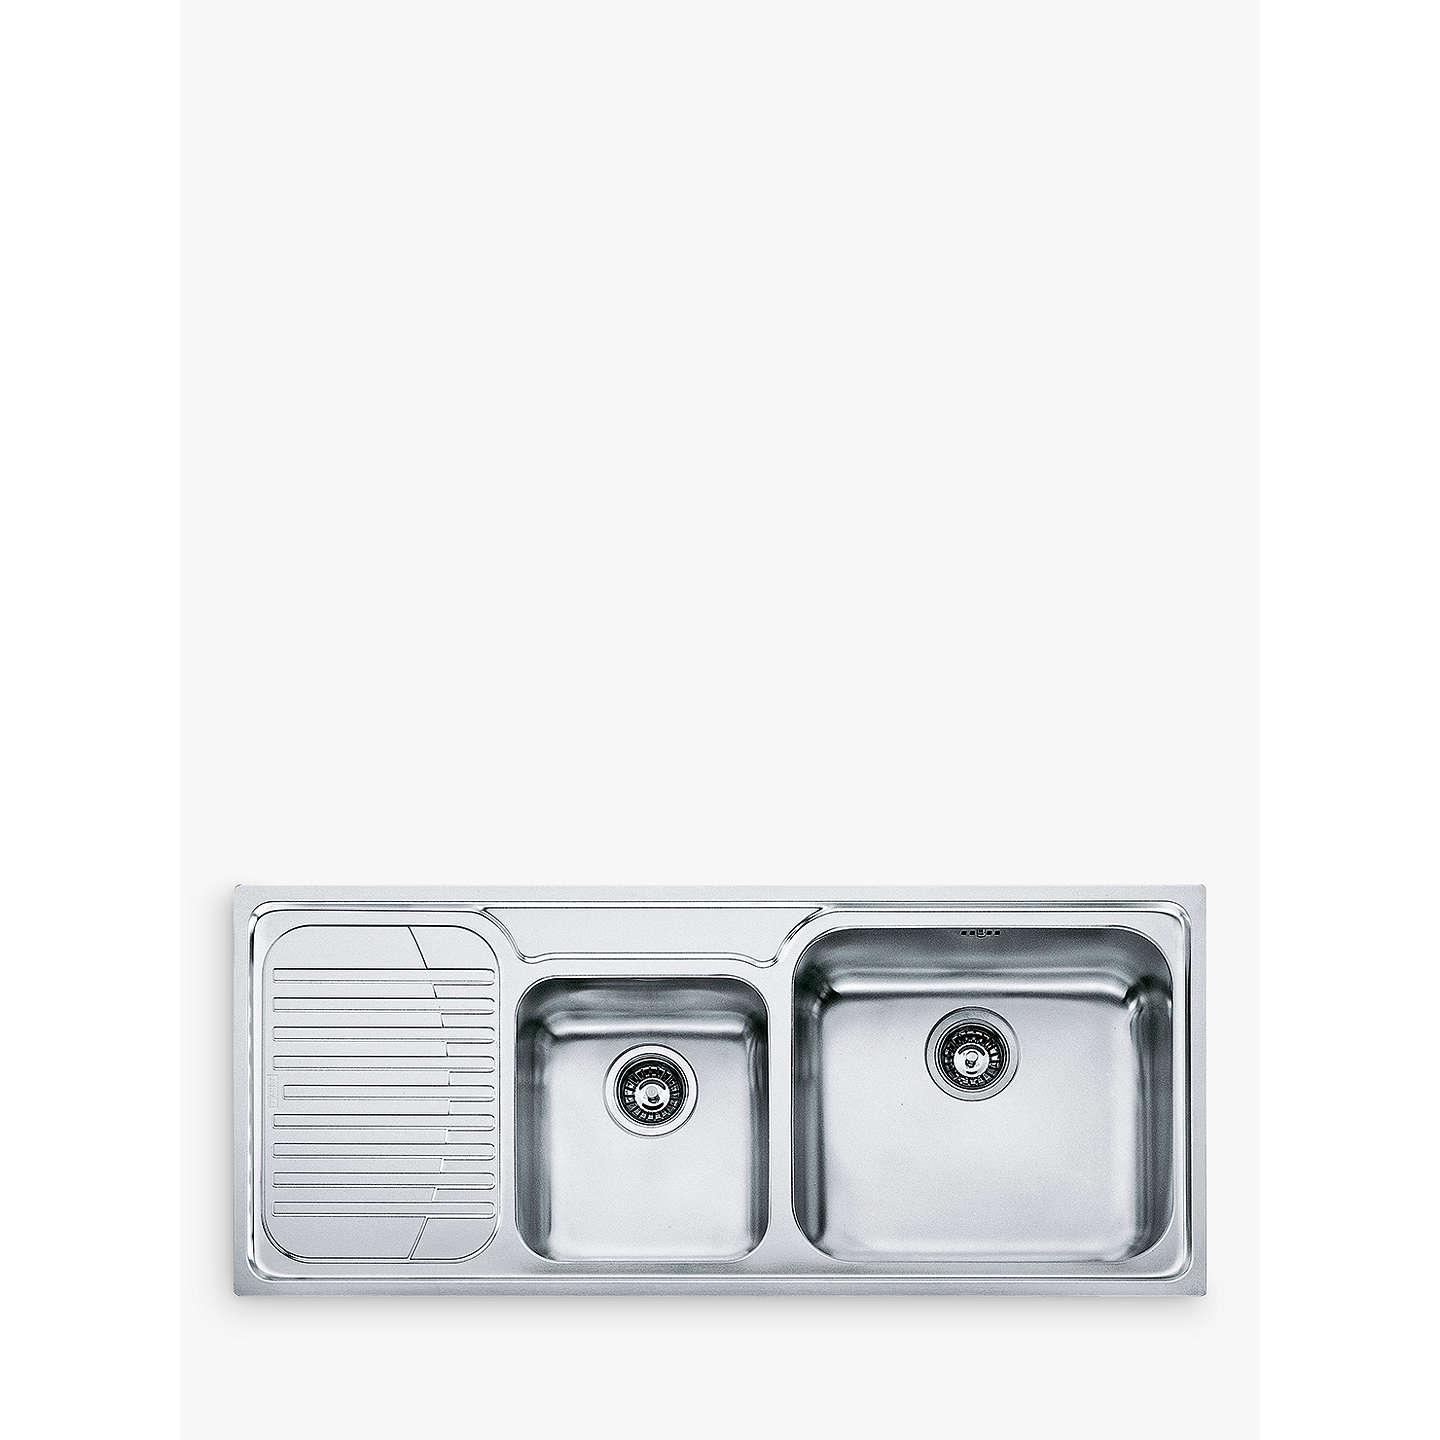 Franke Galassia GAX 621 Kitchen Sink With 2 Bowls, Stainless Steel ...